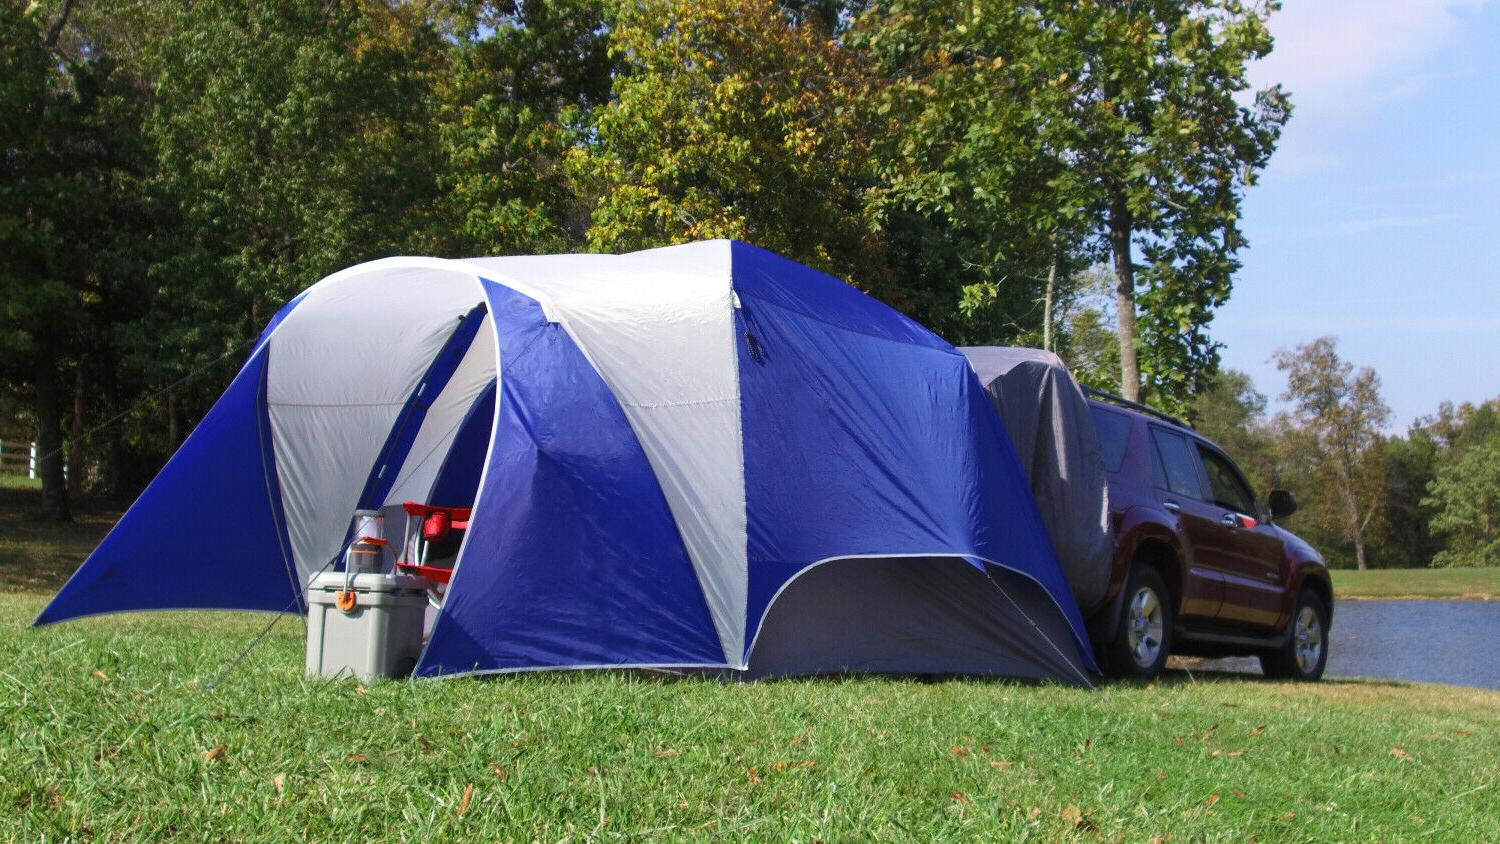 5 Person Tent SUV Camping Outing Picnic Events